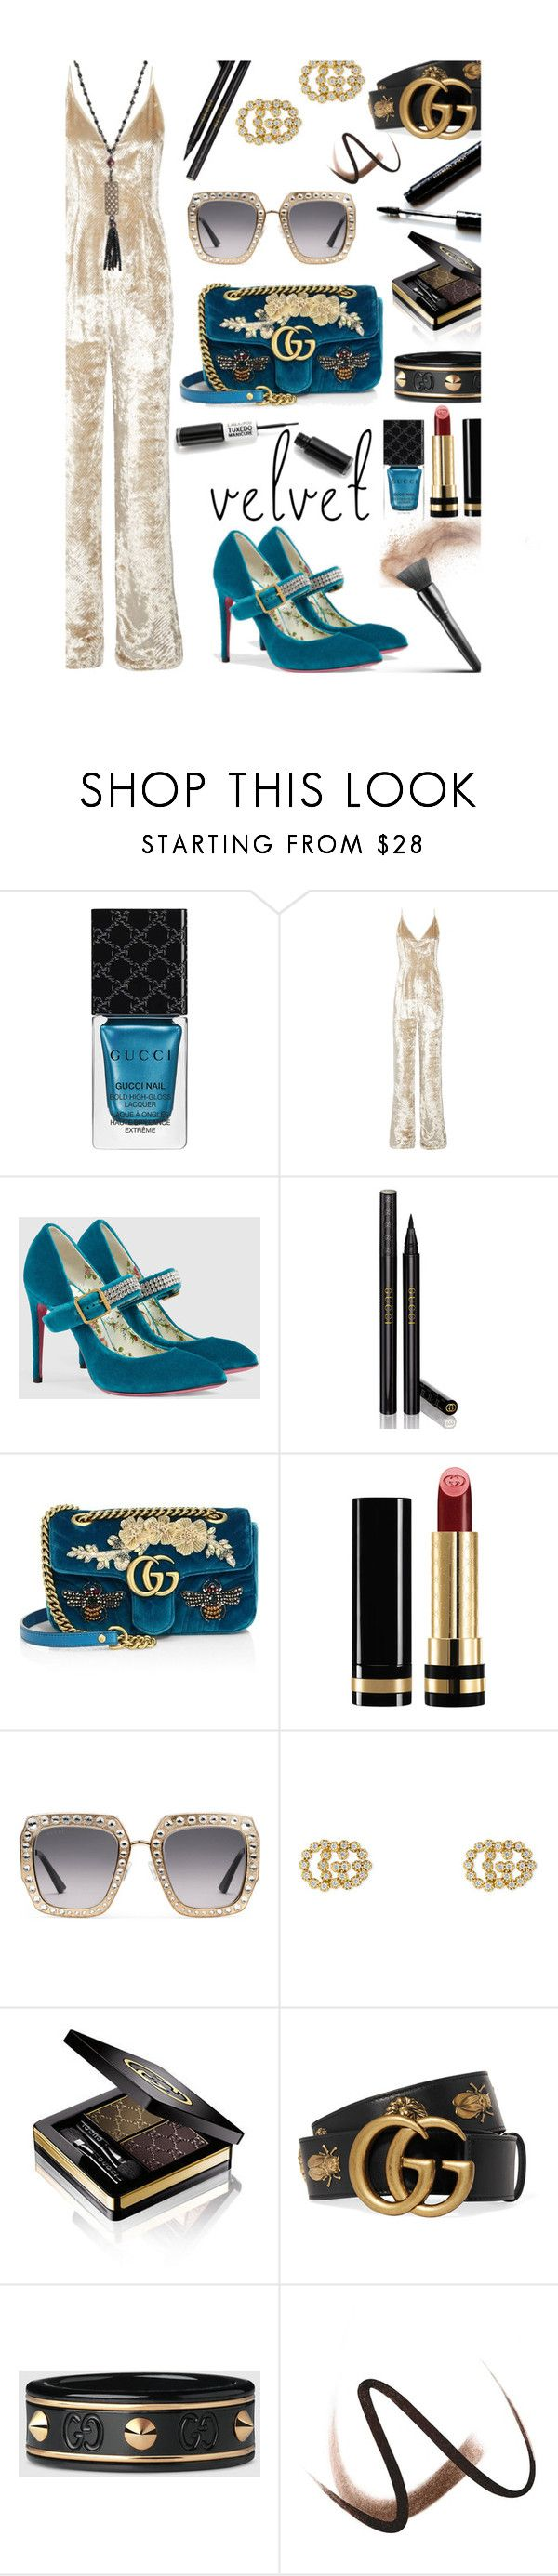 """""""Velvet Crush"""" by mia-christine ❤ liked on Polyvore featuring Gucci, Gabriela Hearst, Dolce&Gabbana, Burberry, Jade Jagger and velvet"""